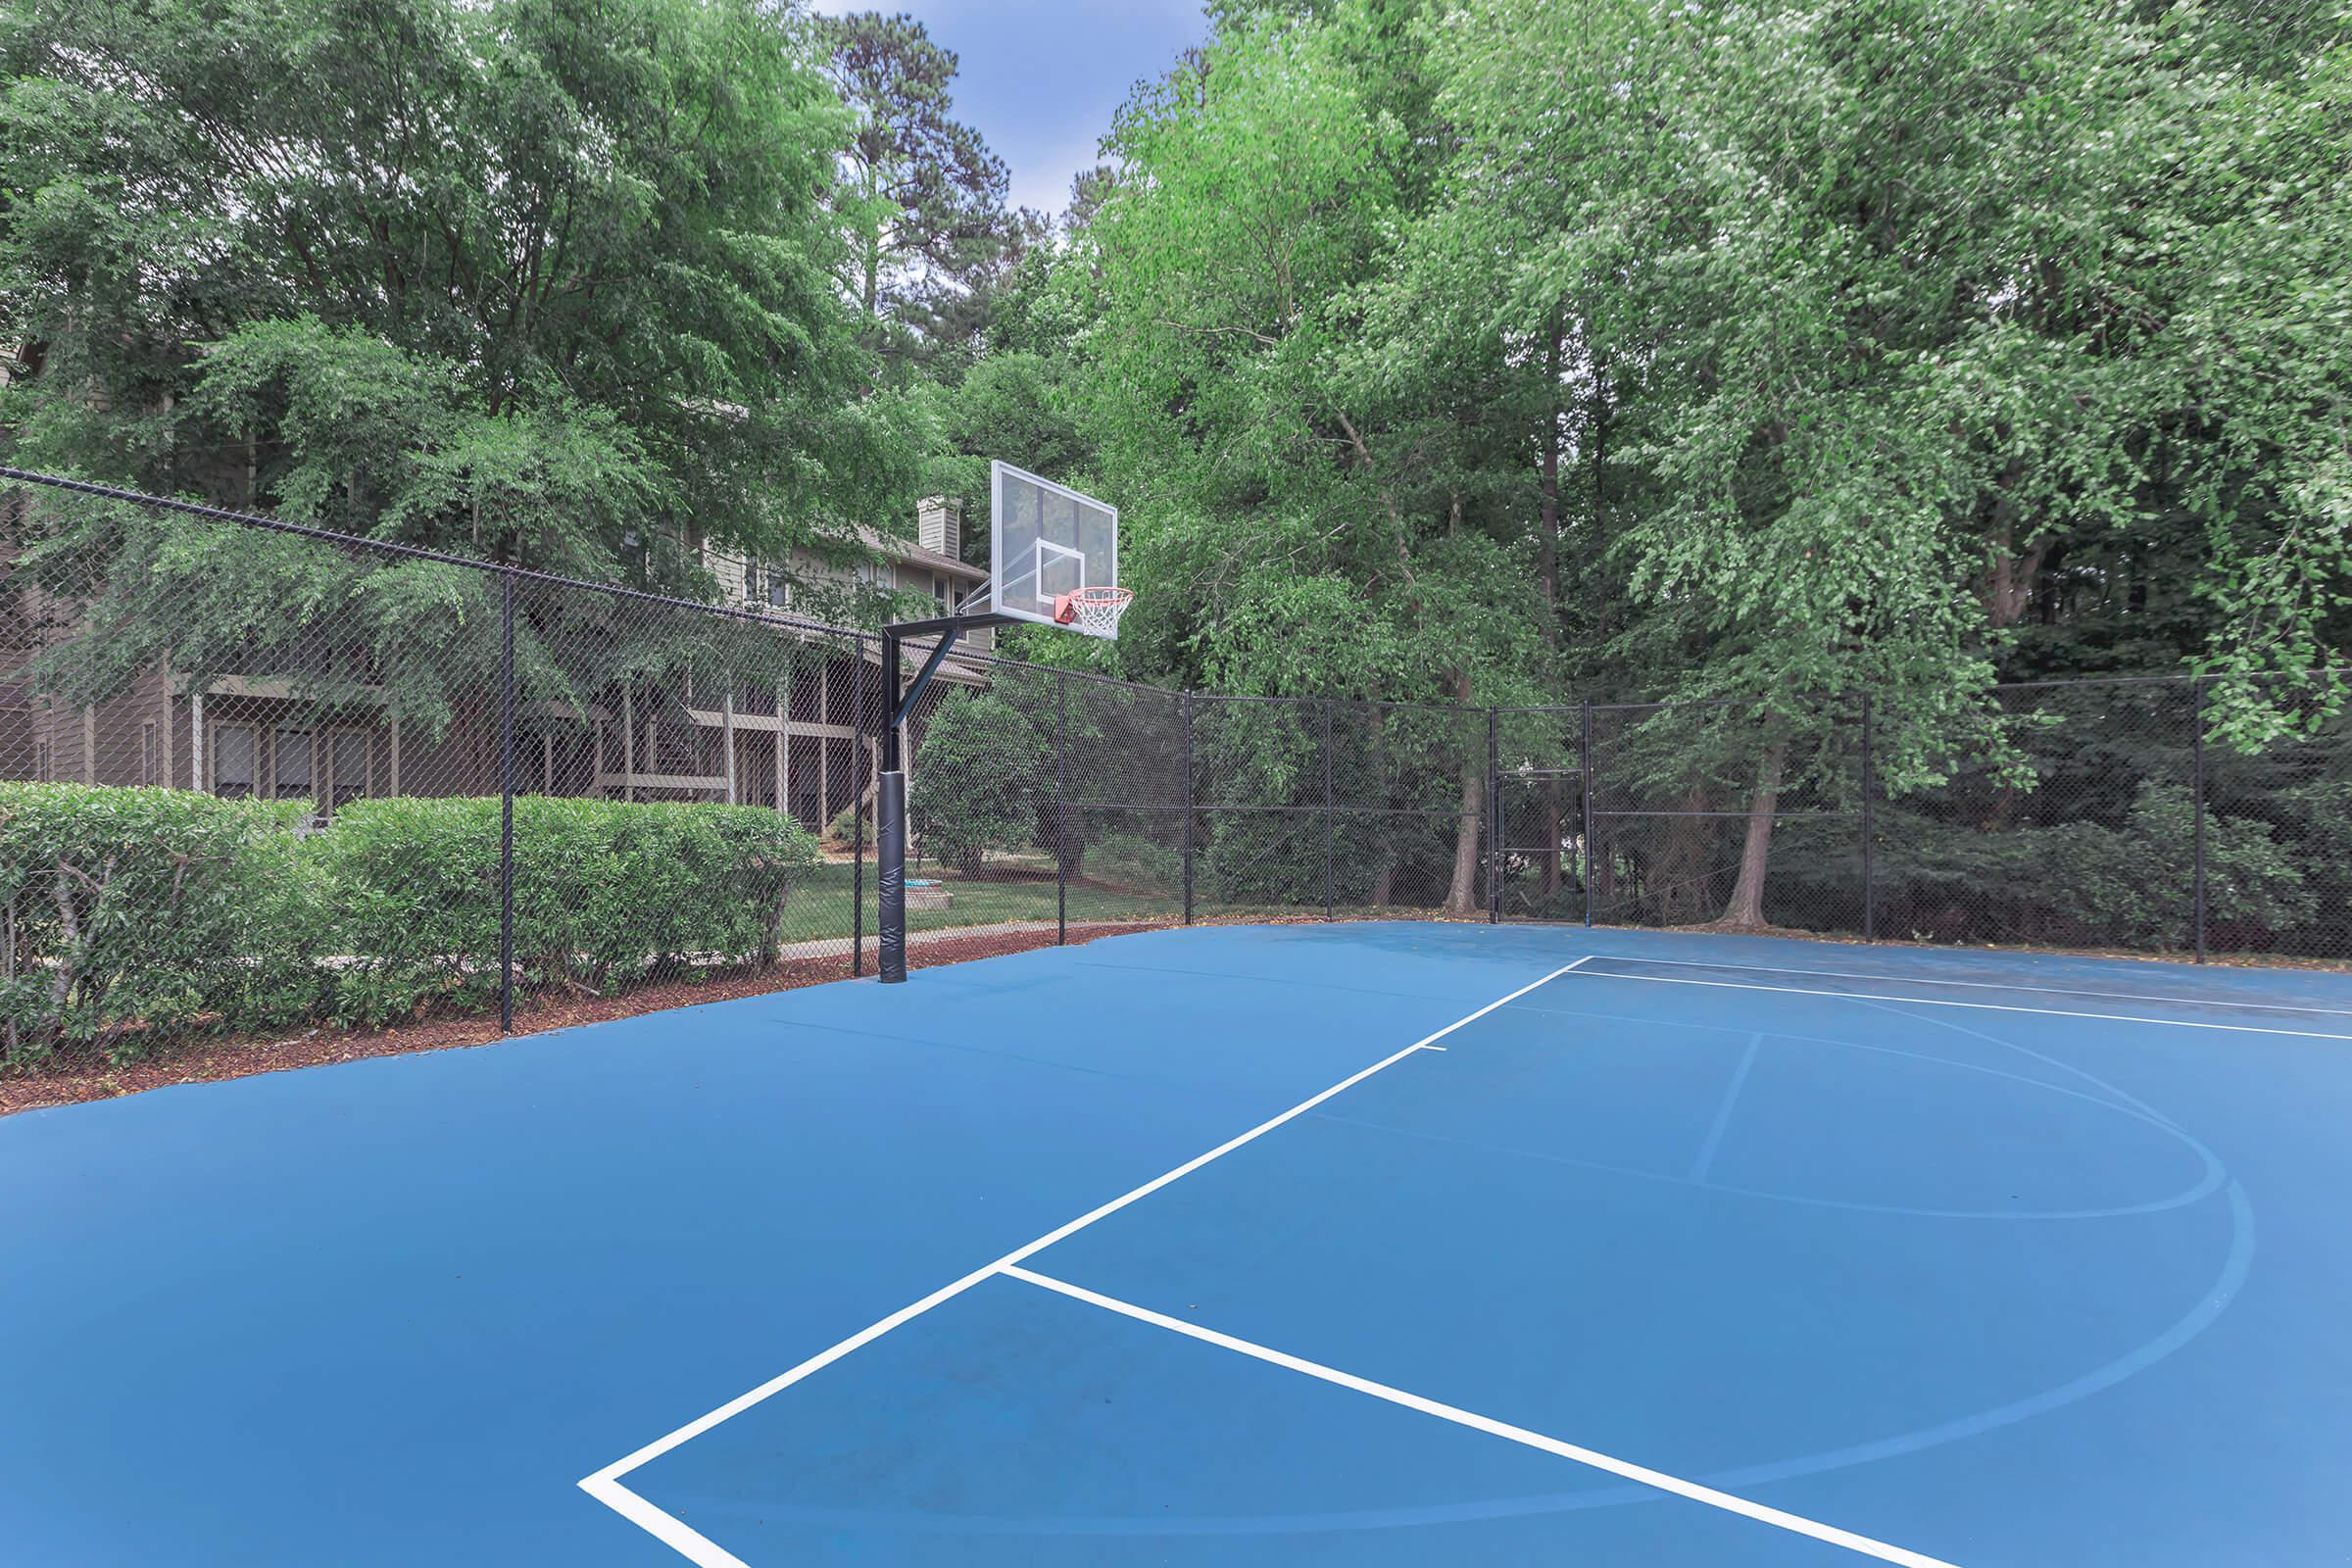 a basketball on a court with a racquet